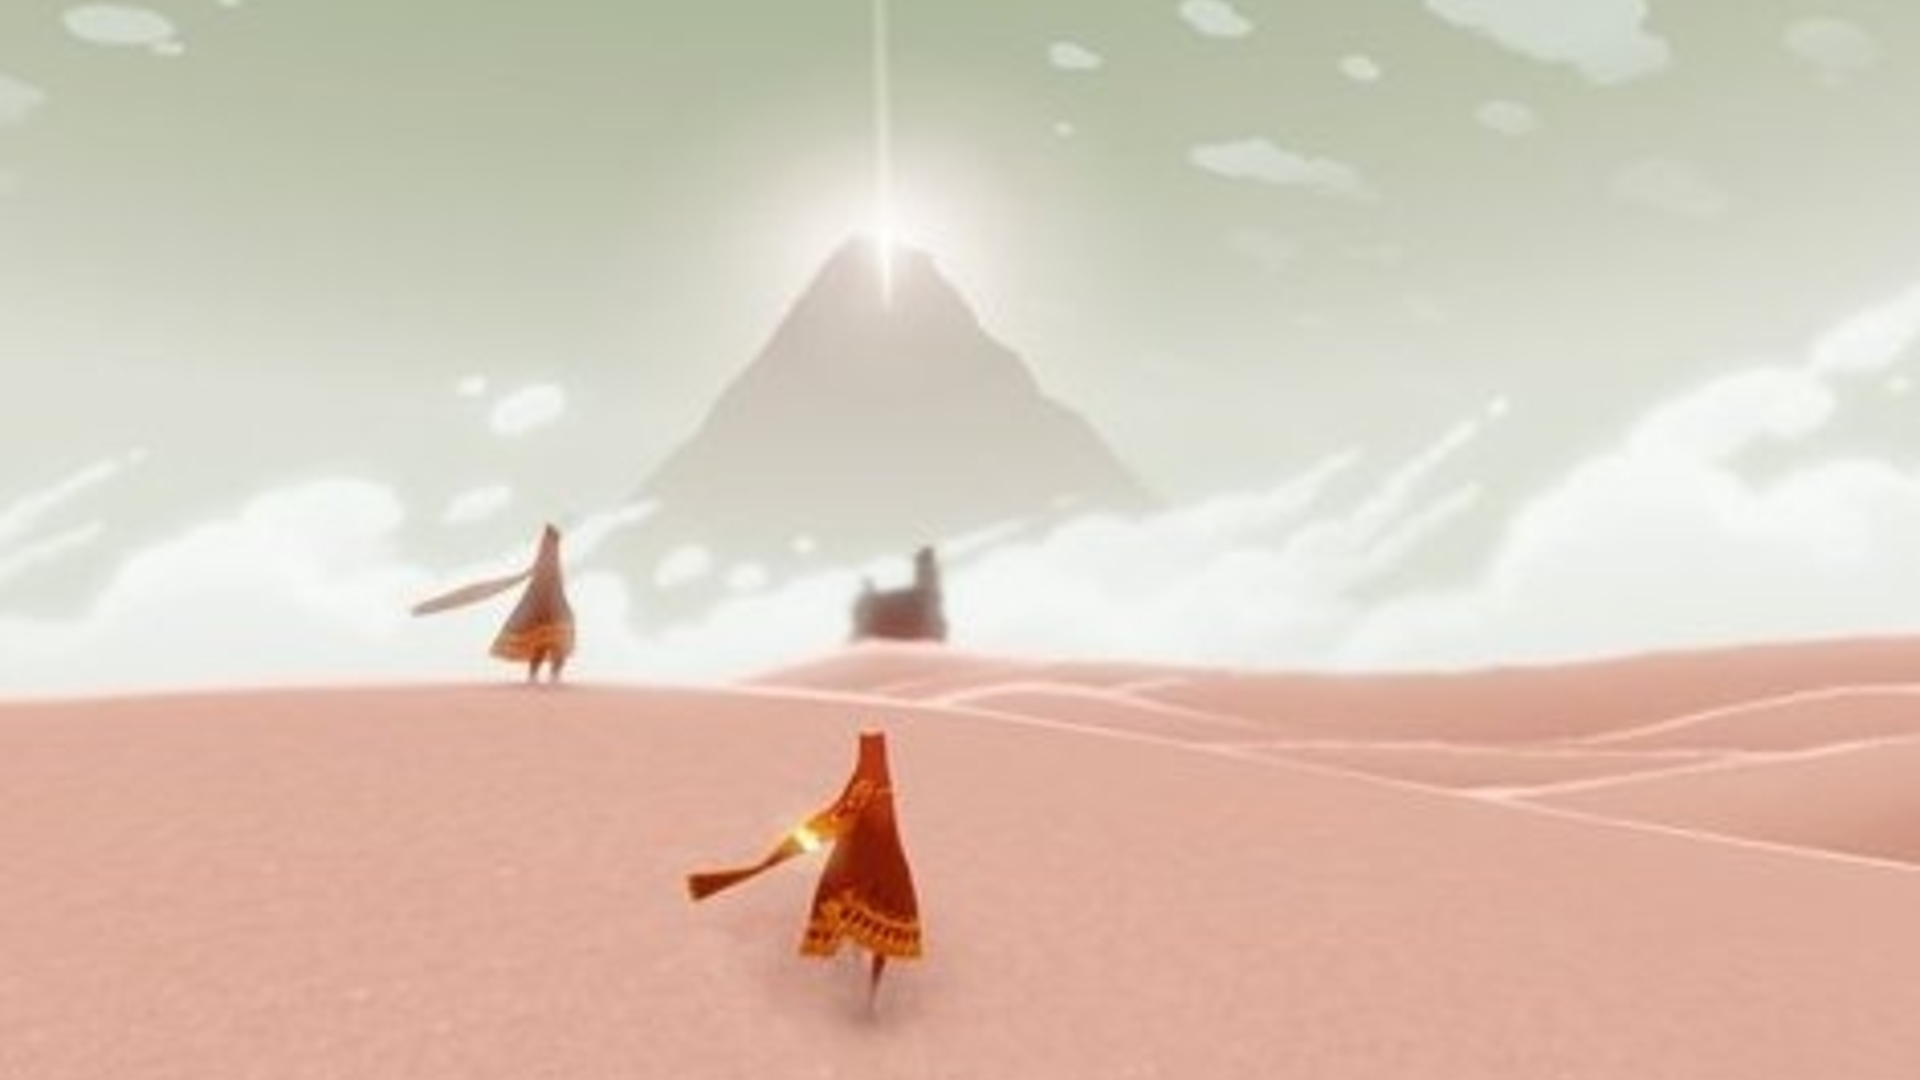 Flower, FlOw and Journey headed to PS4 on disc